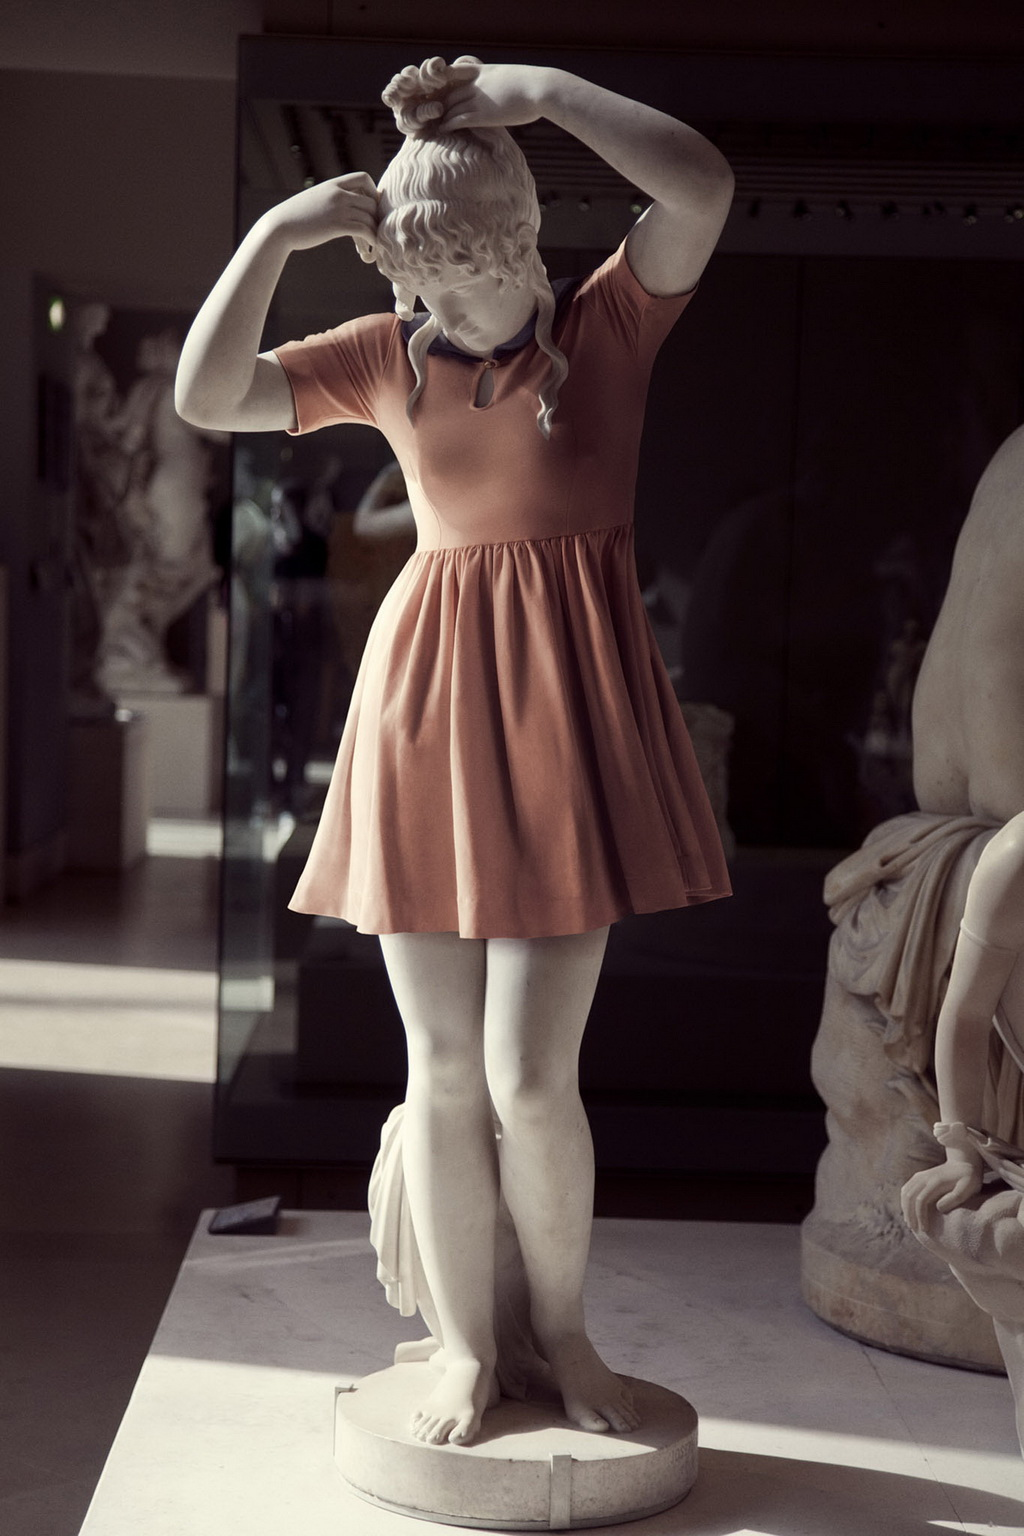 ancient-greek-female-statue Ancient Greeks wearing hipster clothes, courtesy of Photoshop Exposure